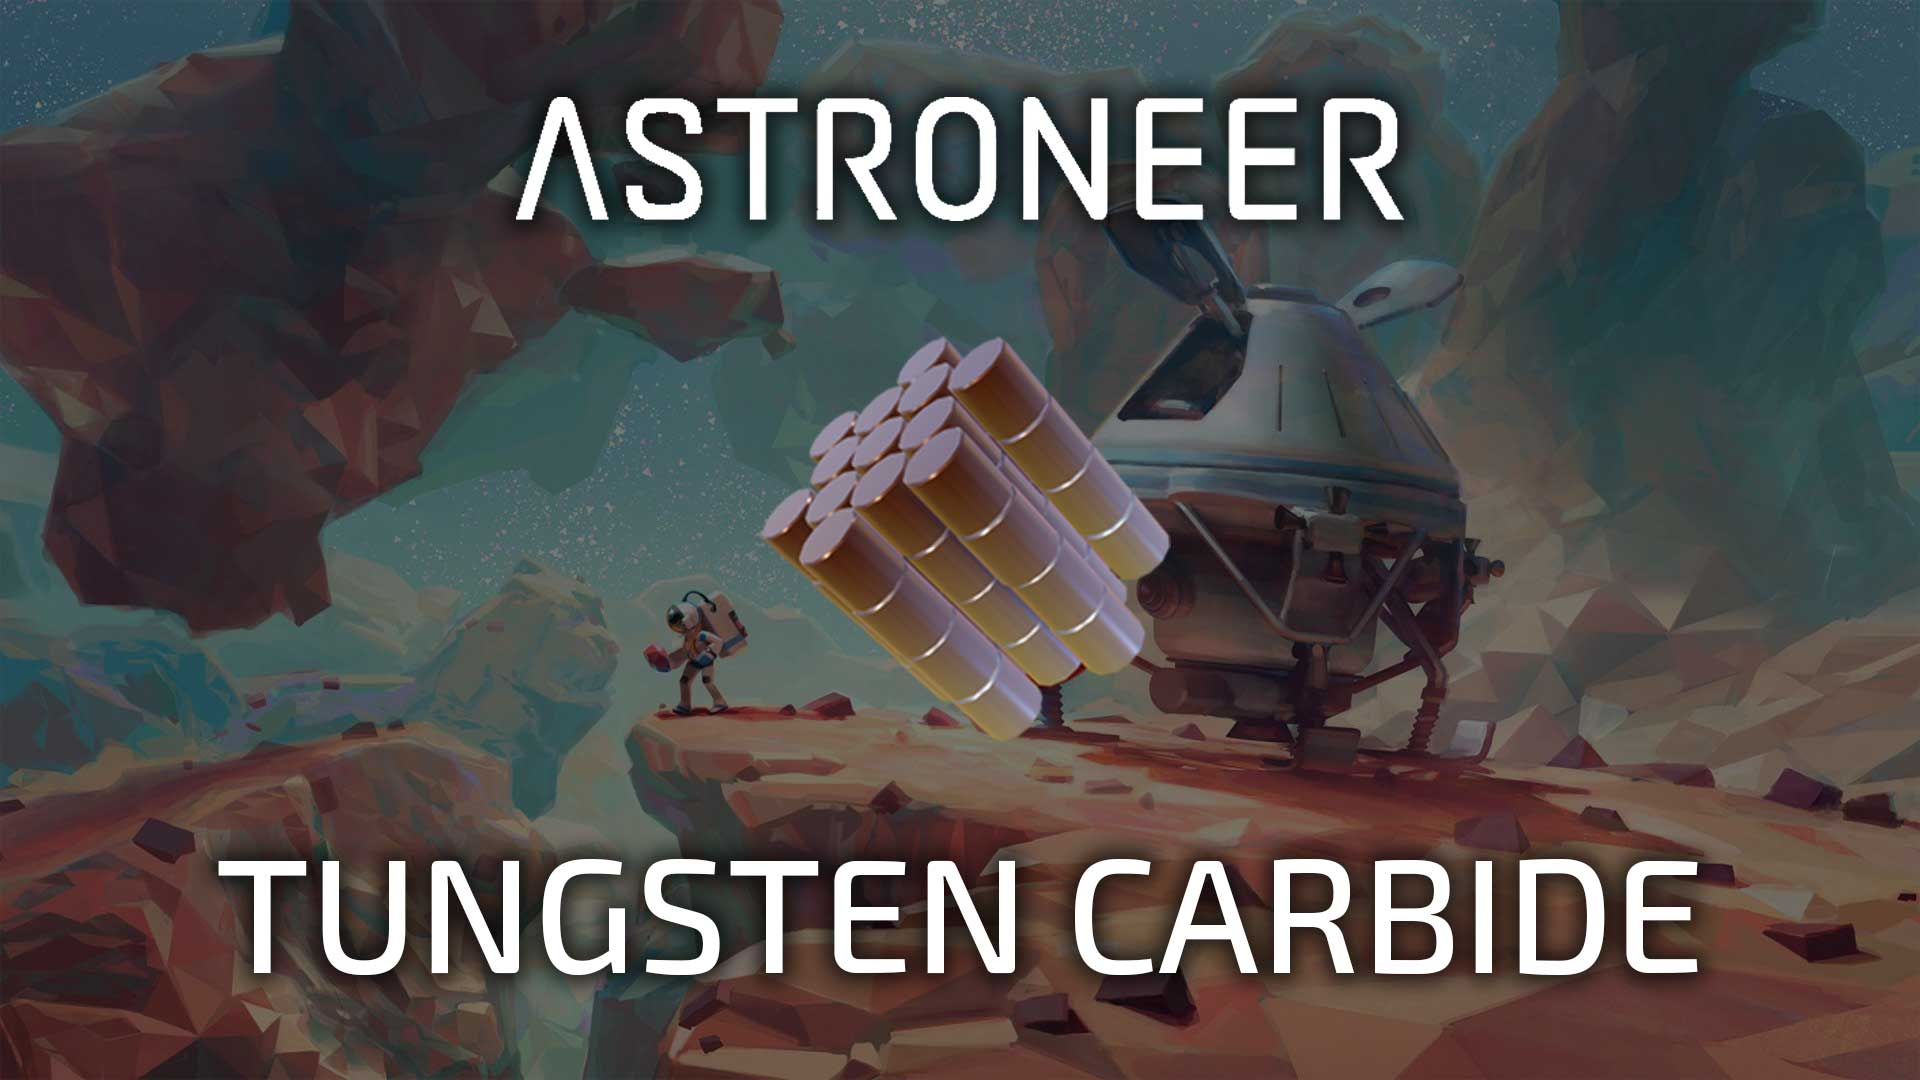 astroneer tungsten carbide